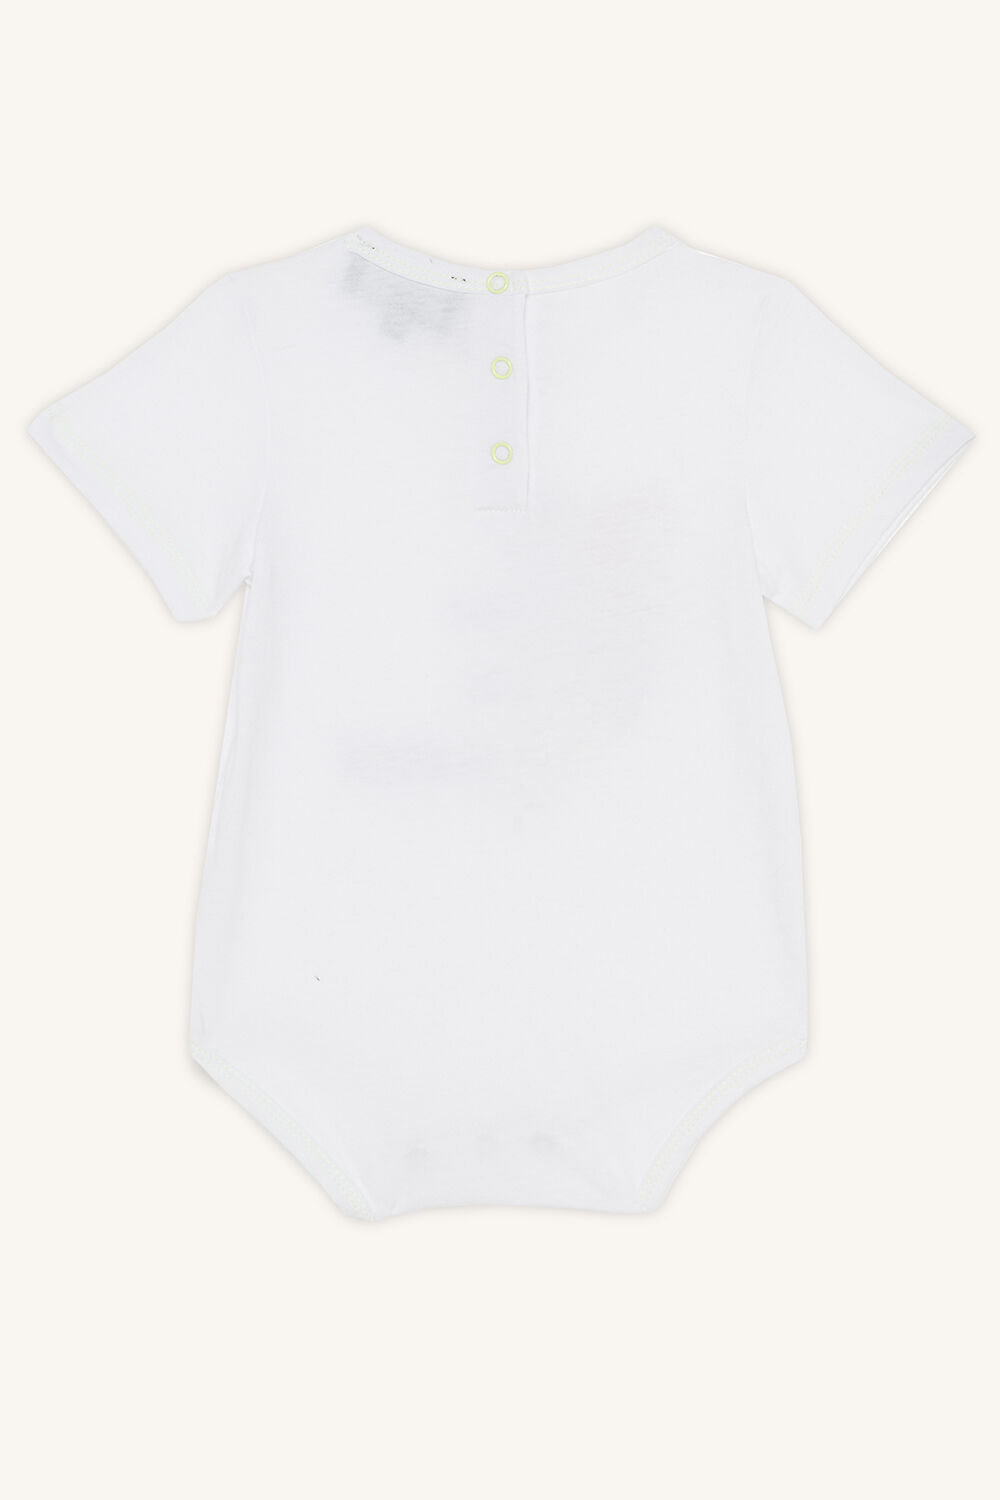 TIGA SHORT SLEEVE GROW in colour BRIGHT WHITE